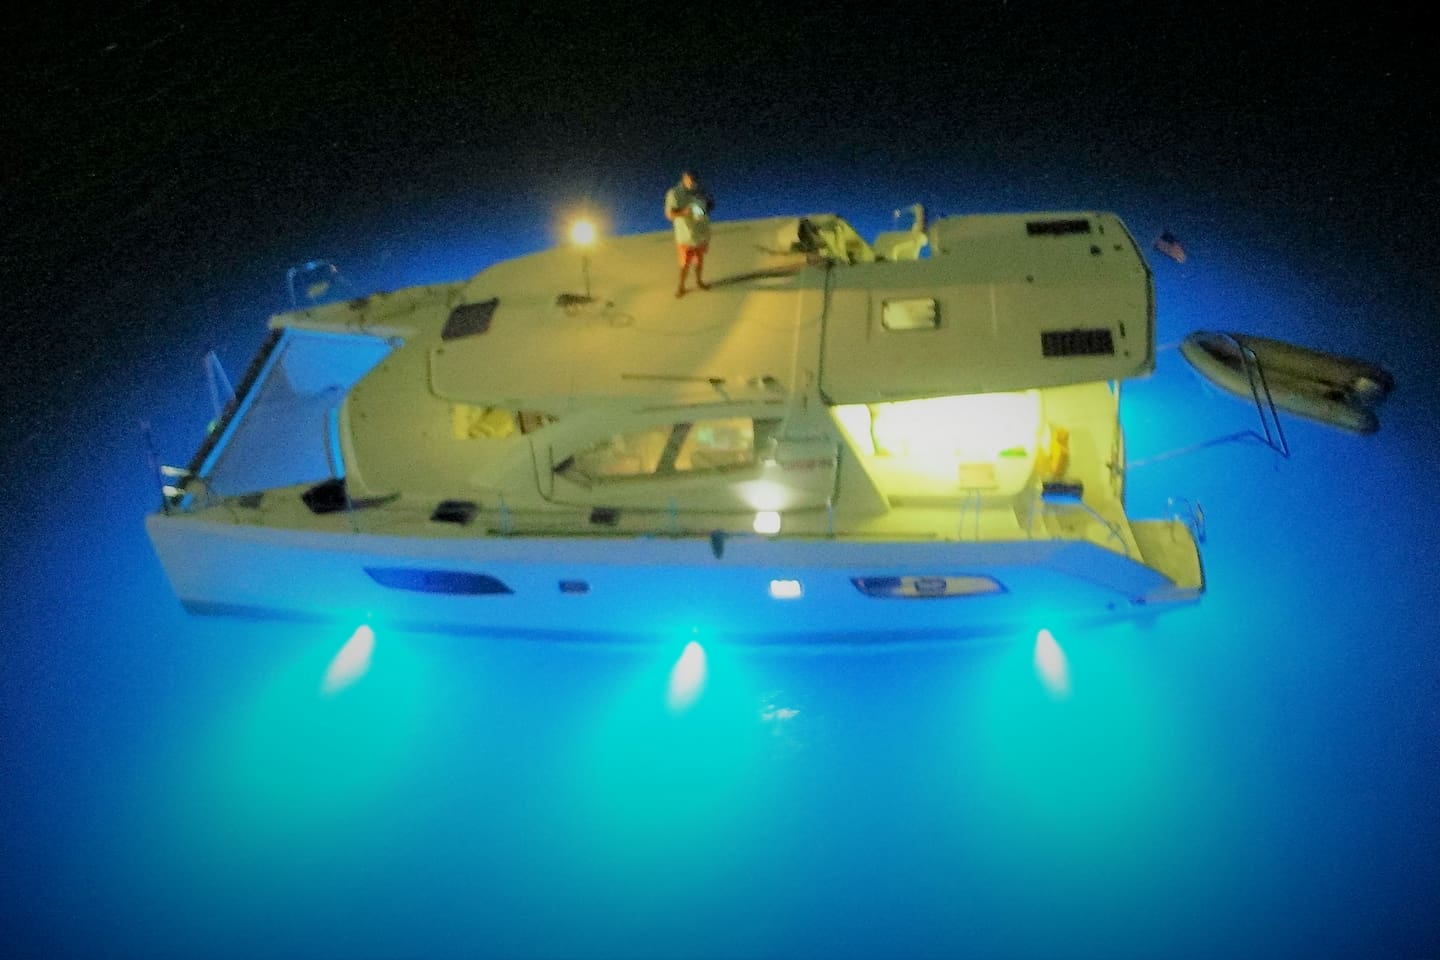 Boat at night with under water lights on